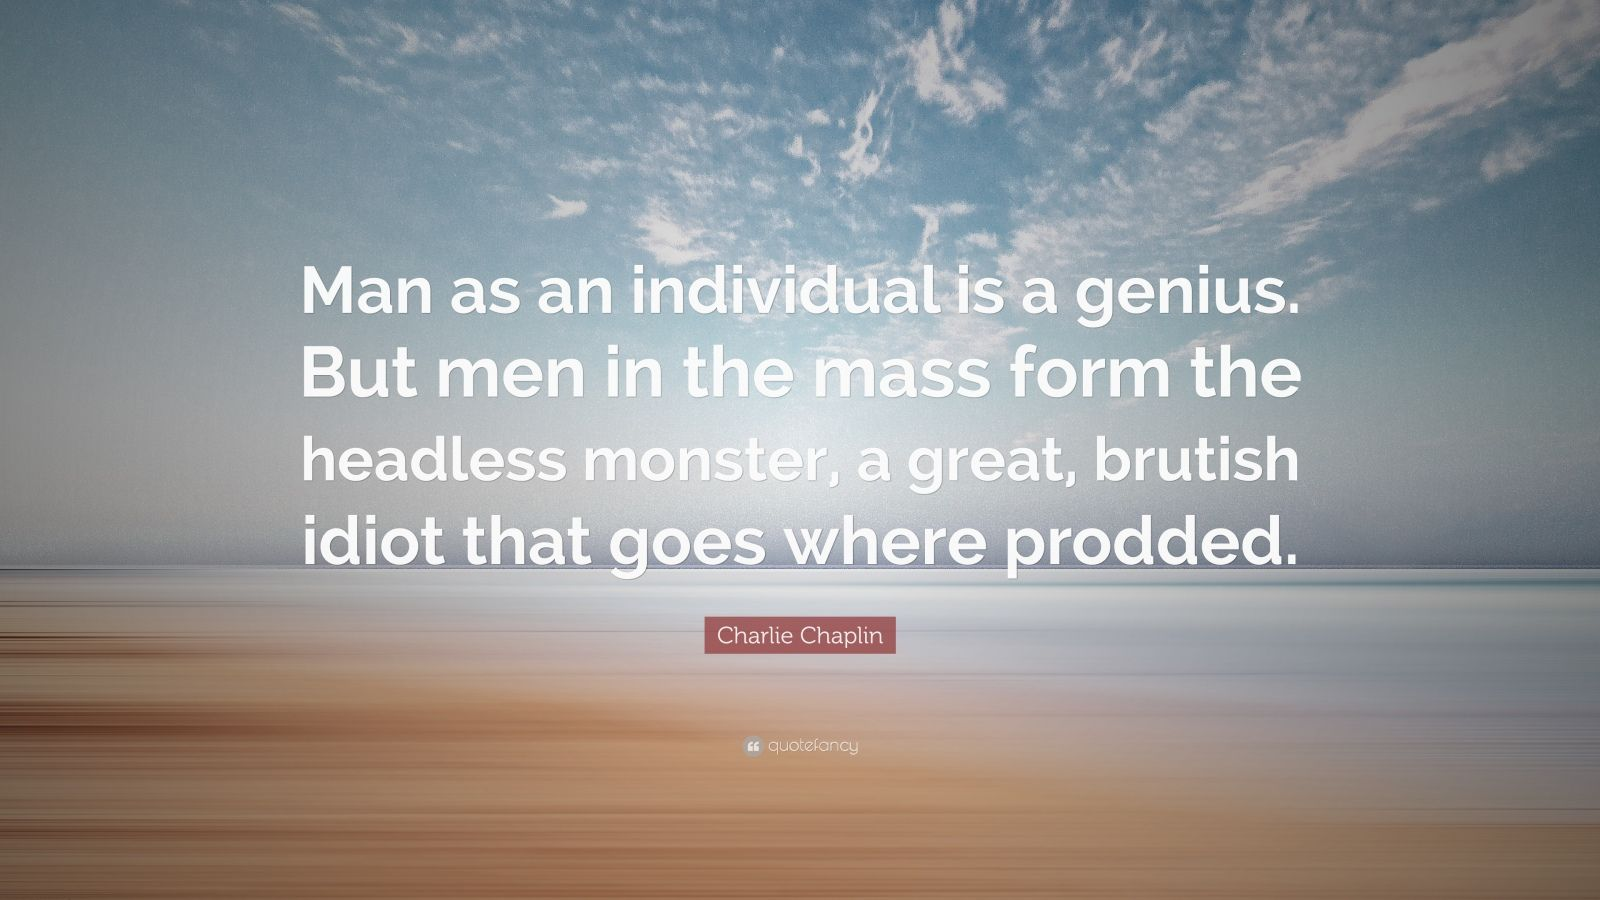 """Individuality Quotes: """"Man as an individual is a genius. But men in the mass form the headless monster, a great, brutish idiot that goes where prodded."""" — Charlie Chaplin"""